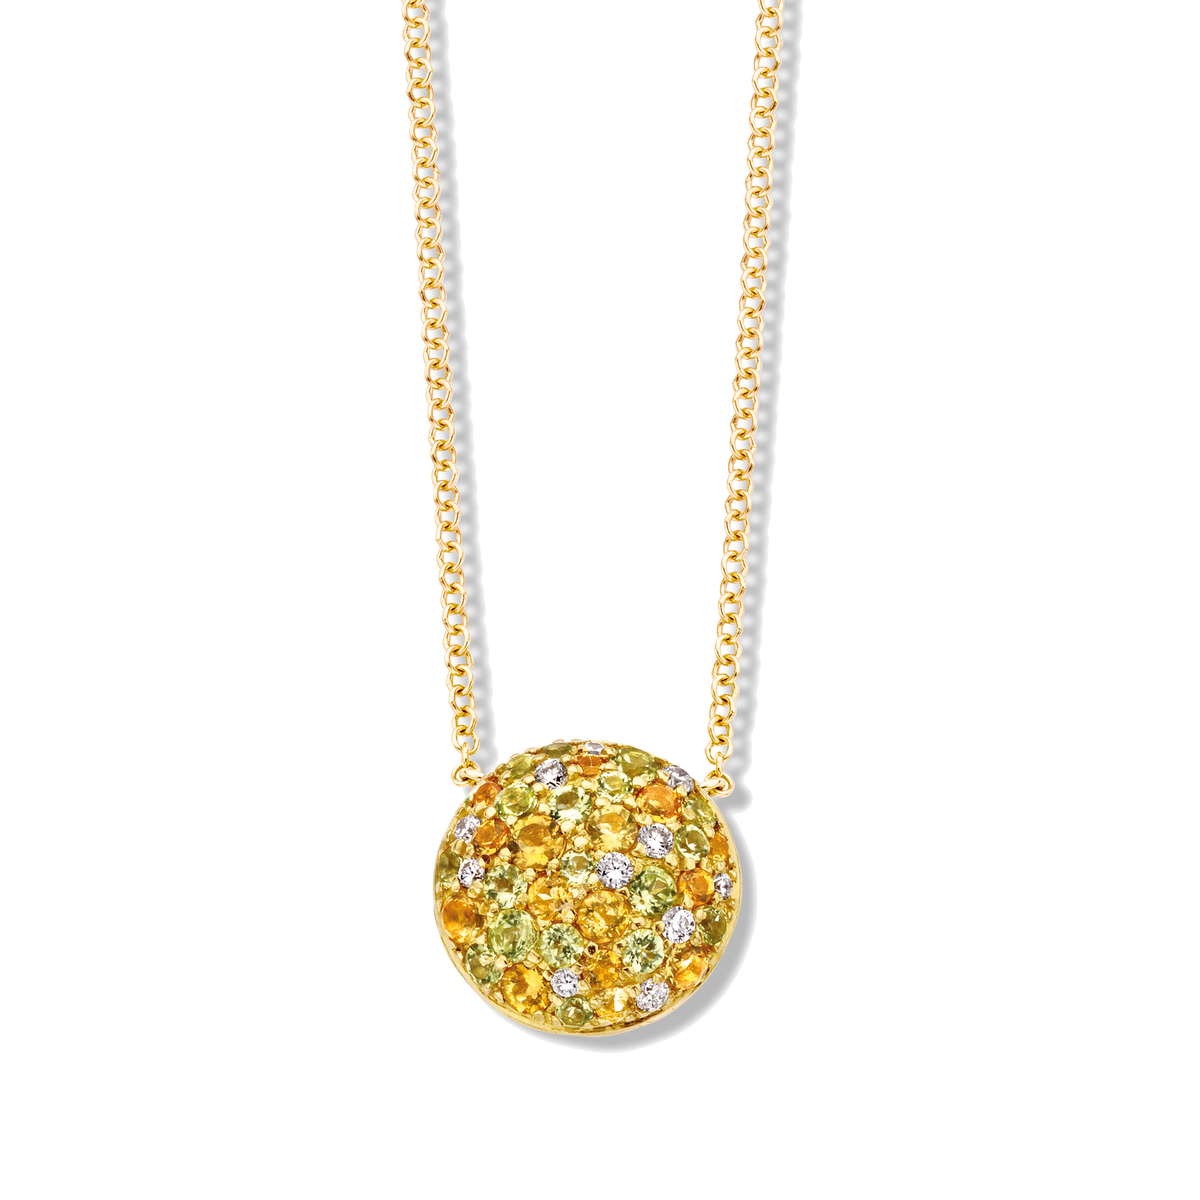 panarea necklace in yellow gold